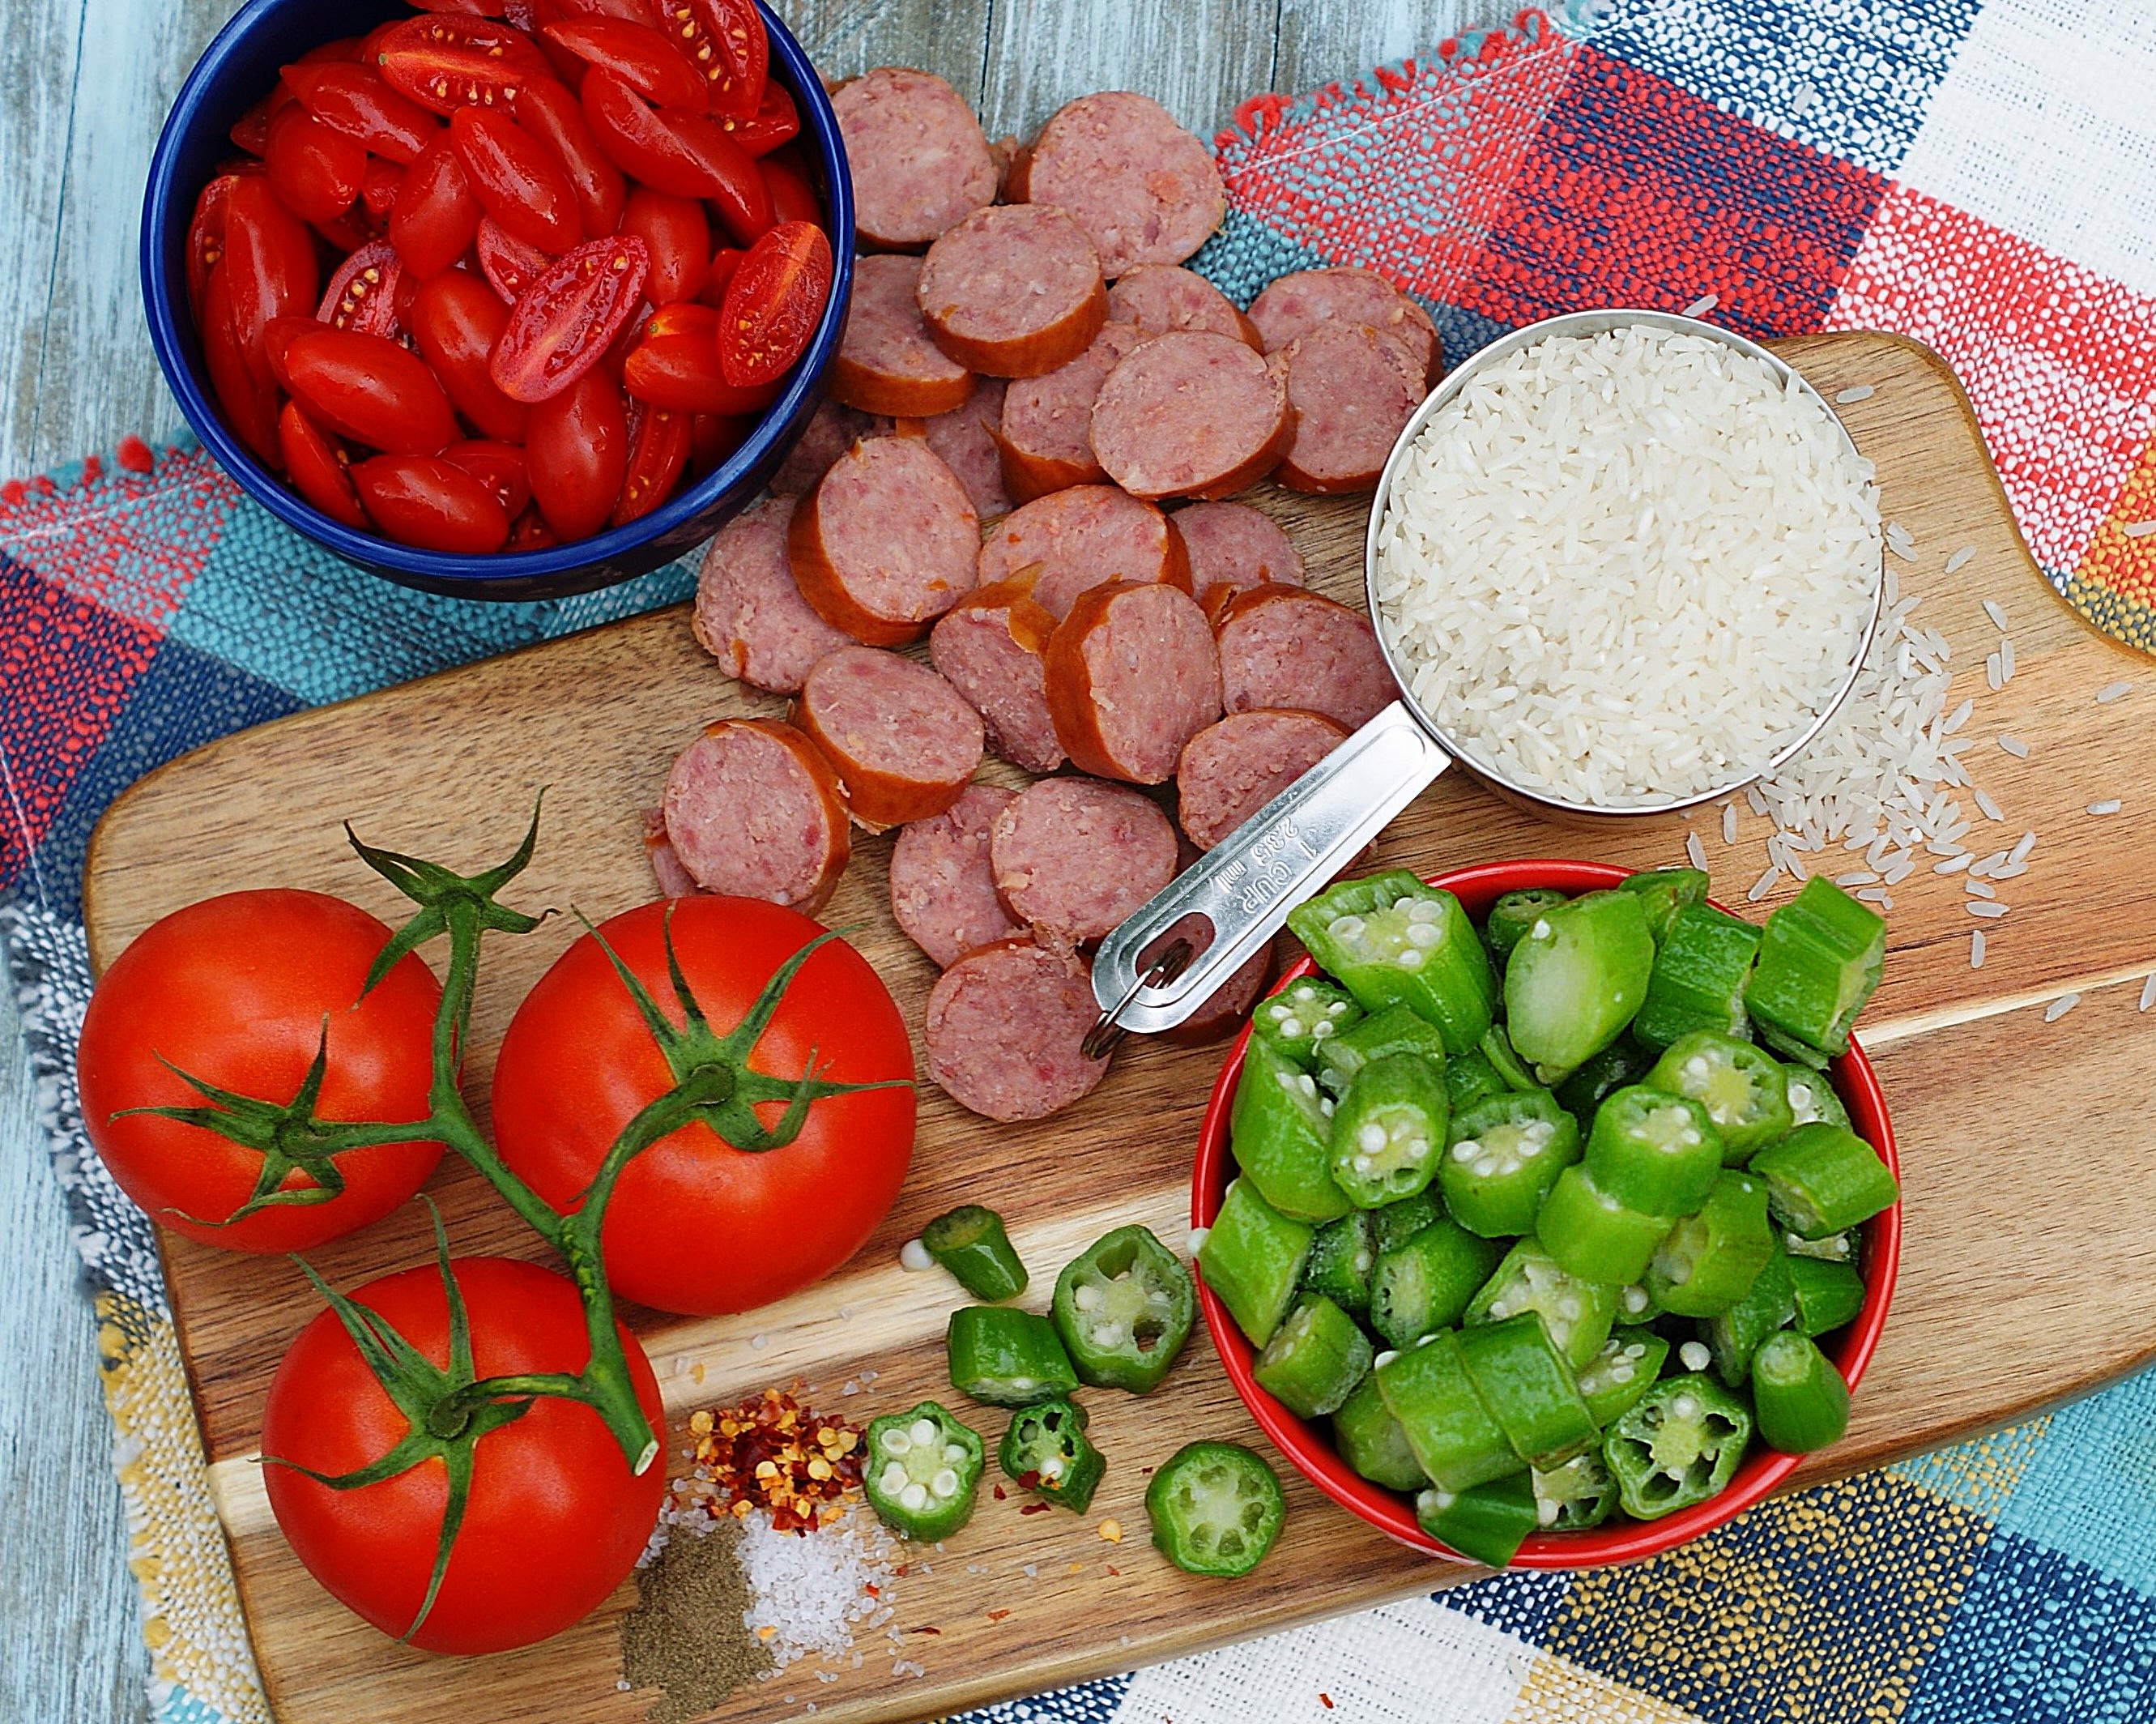 Ingredients for okra & tomatoes with smoked sausage skillet.